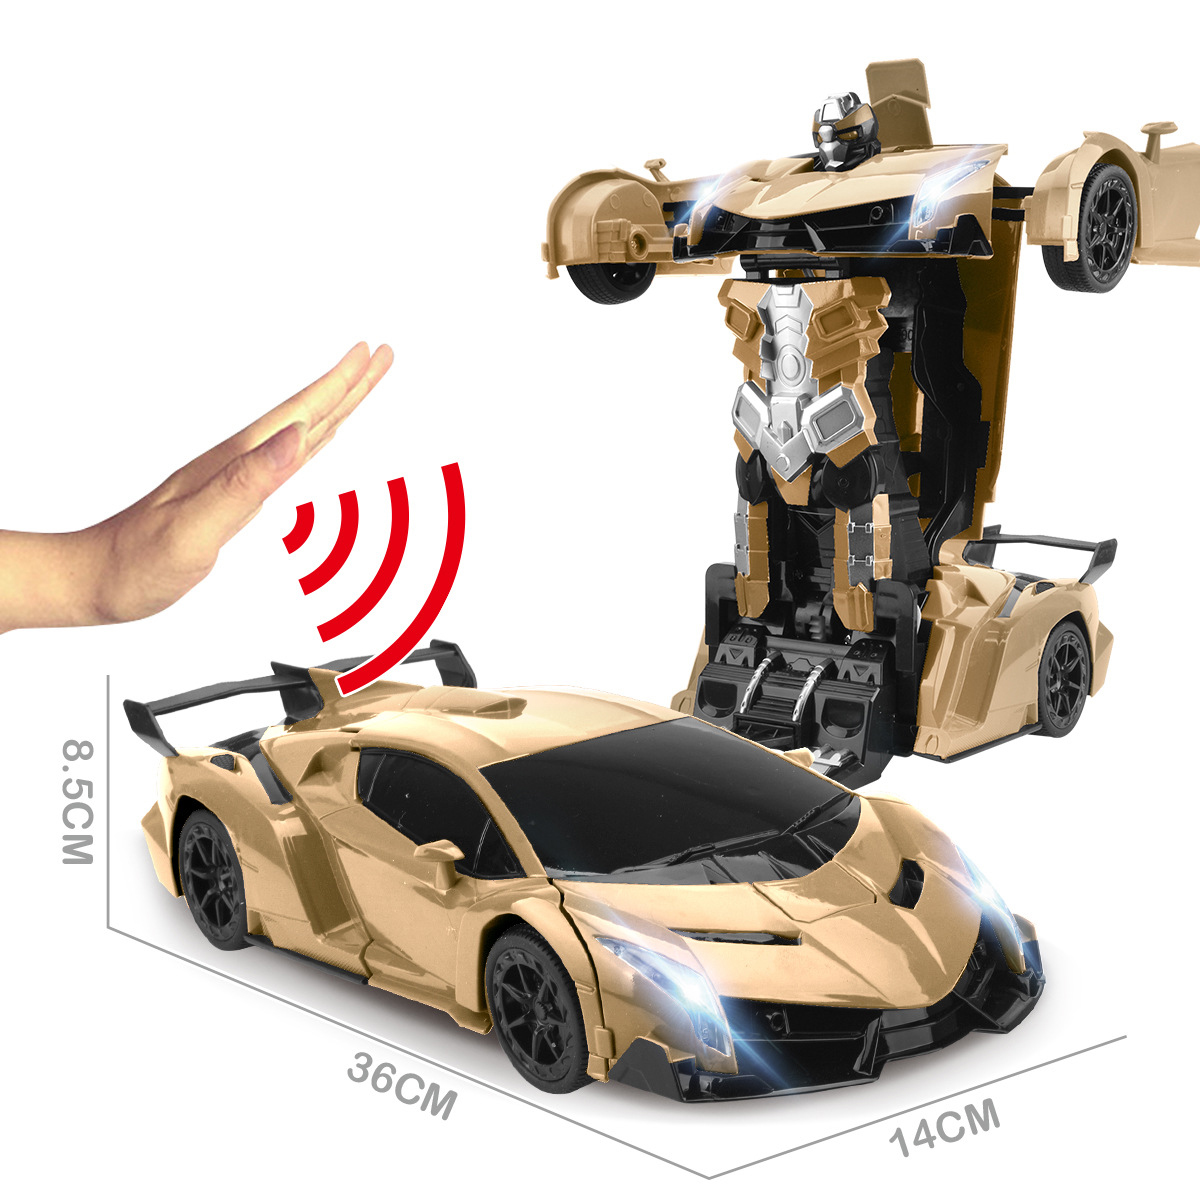 36cm 1:12 RC Car Robot 2.4Ghz Induction Transformation Fighting Robots  Modles Deformation Remote Control Cars Toy Gift for Boys